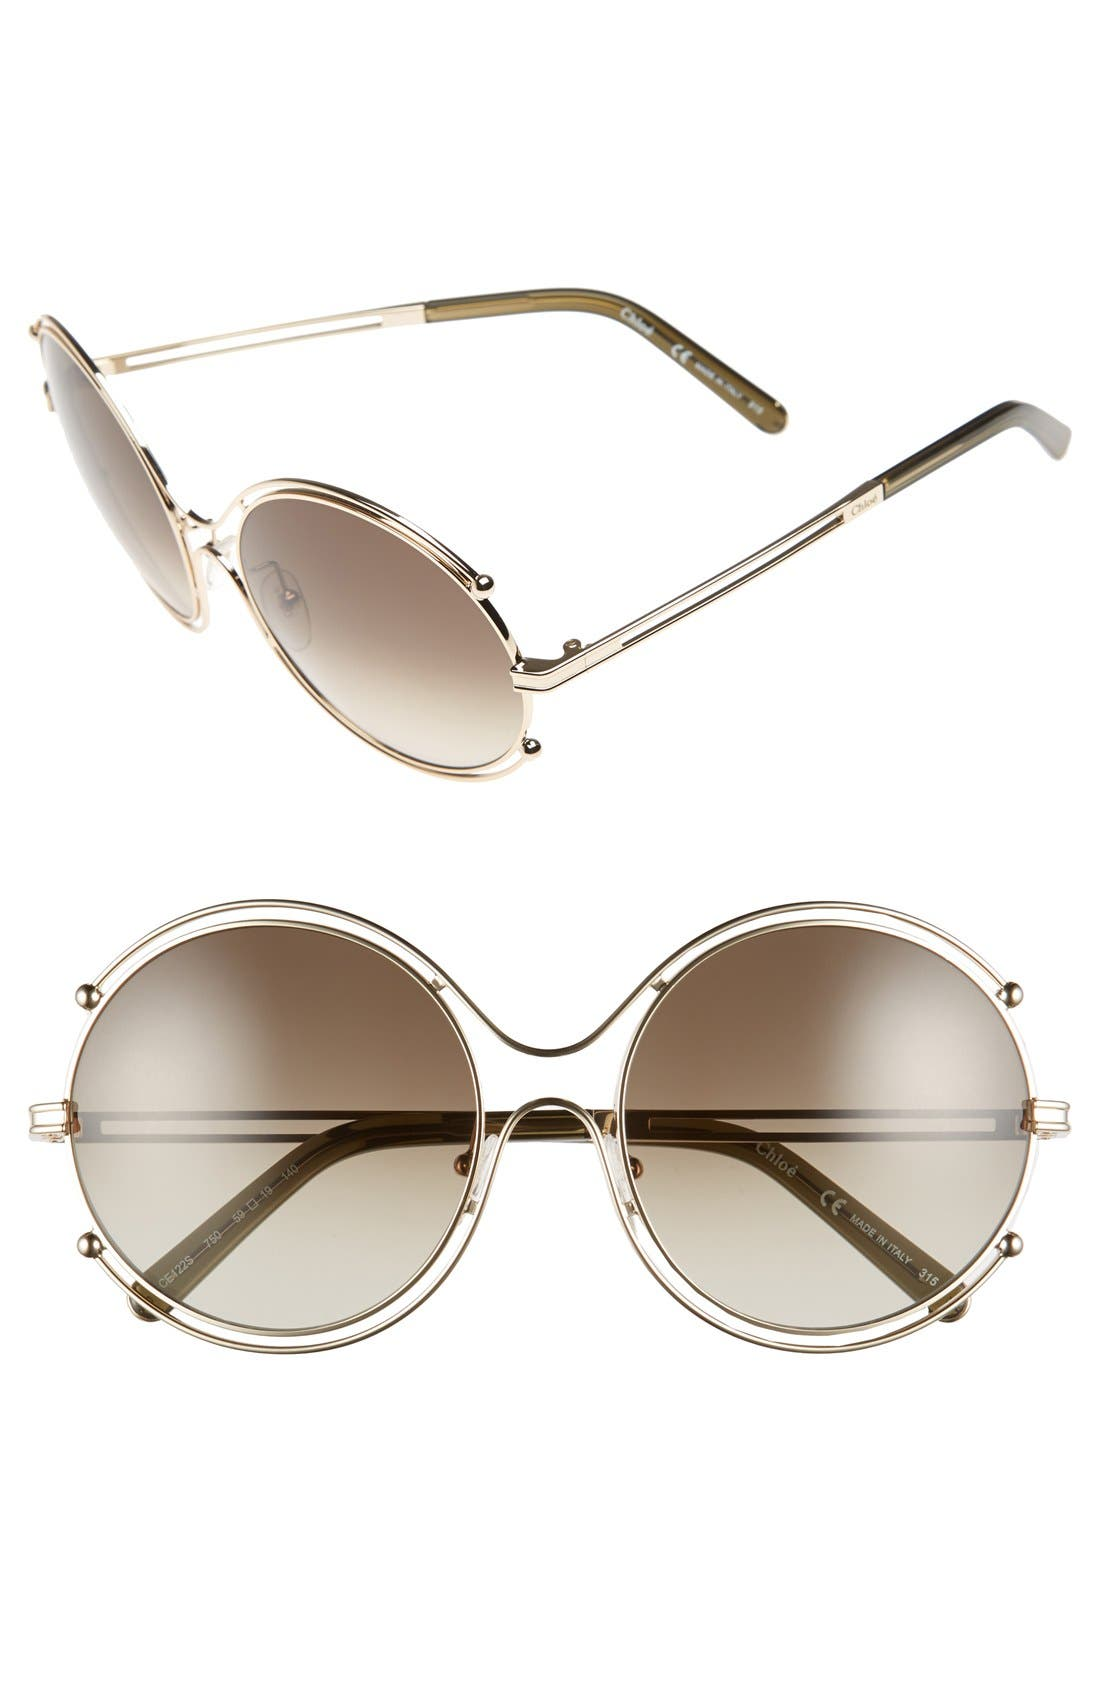 CHLOÉ,                             'Isidora' 59mm Round Sunglasses,                             Main thumbnail 1, color,                             710